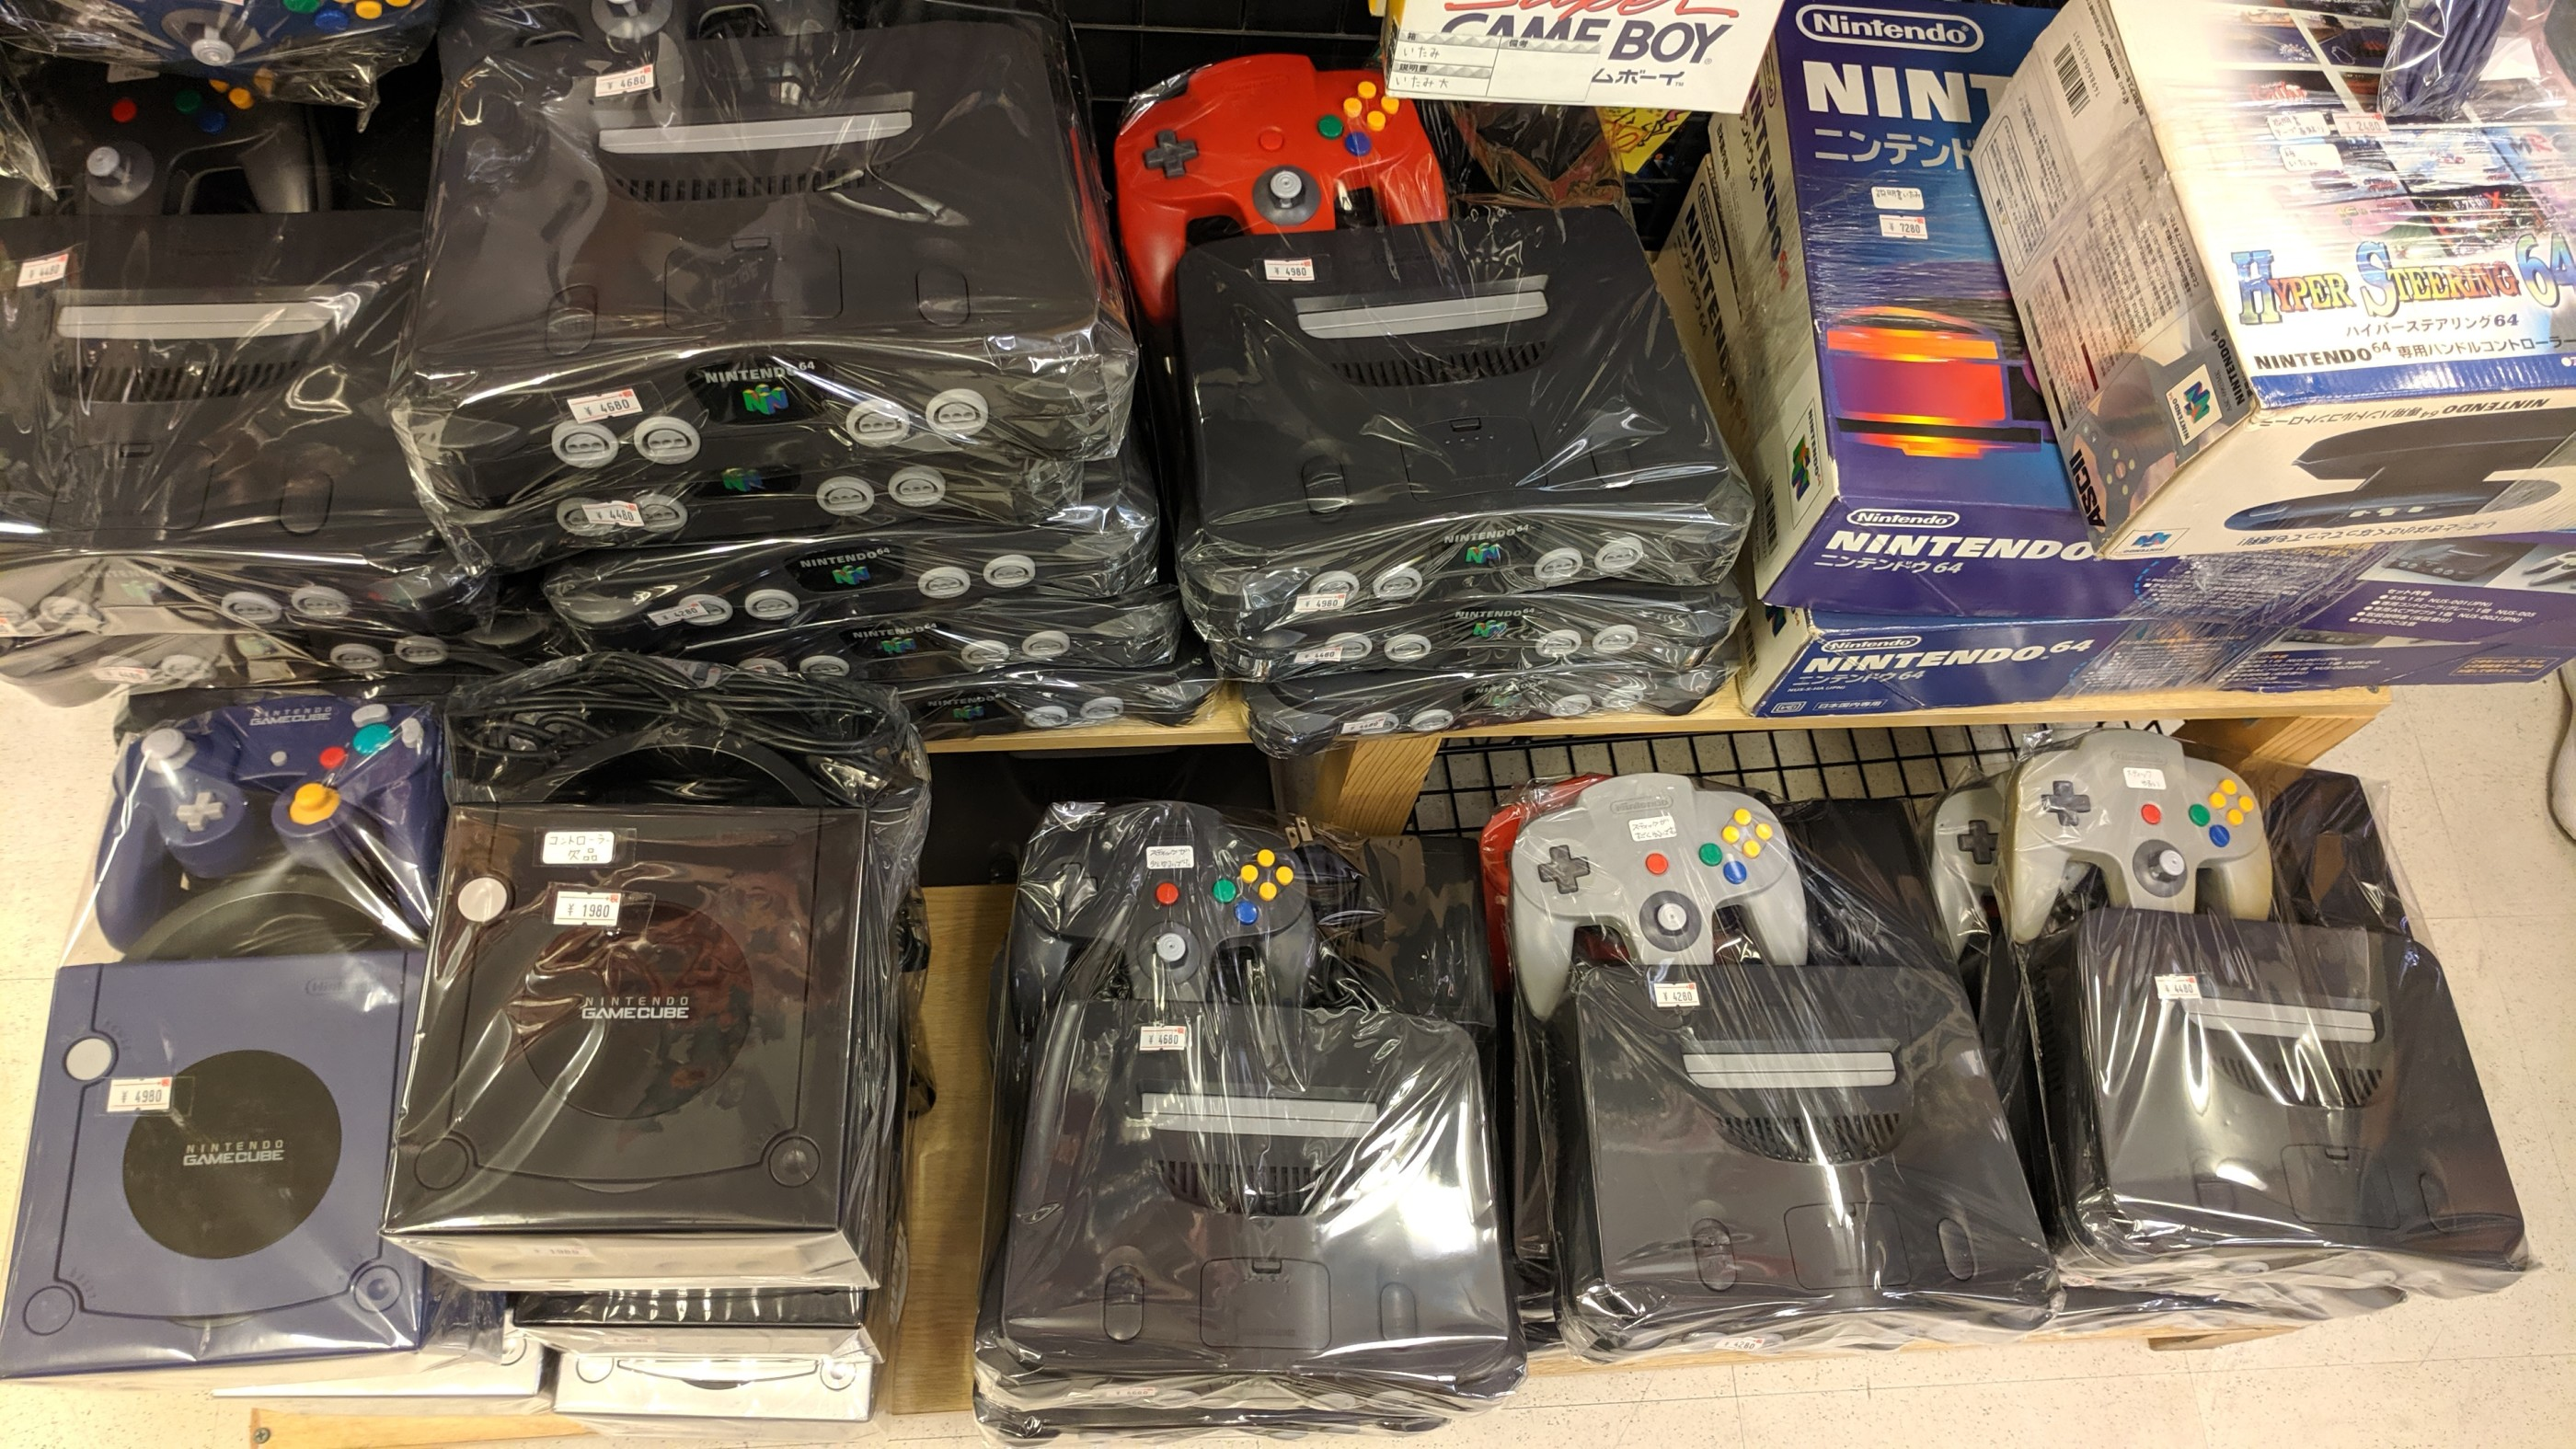 Super Potato had loads of shrink wrapped consoles for sale